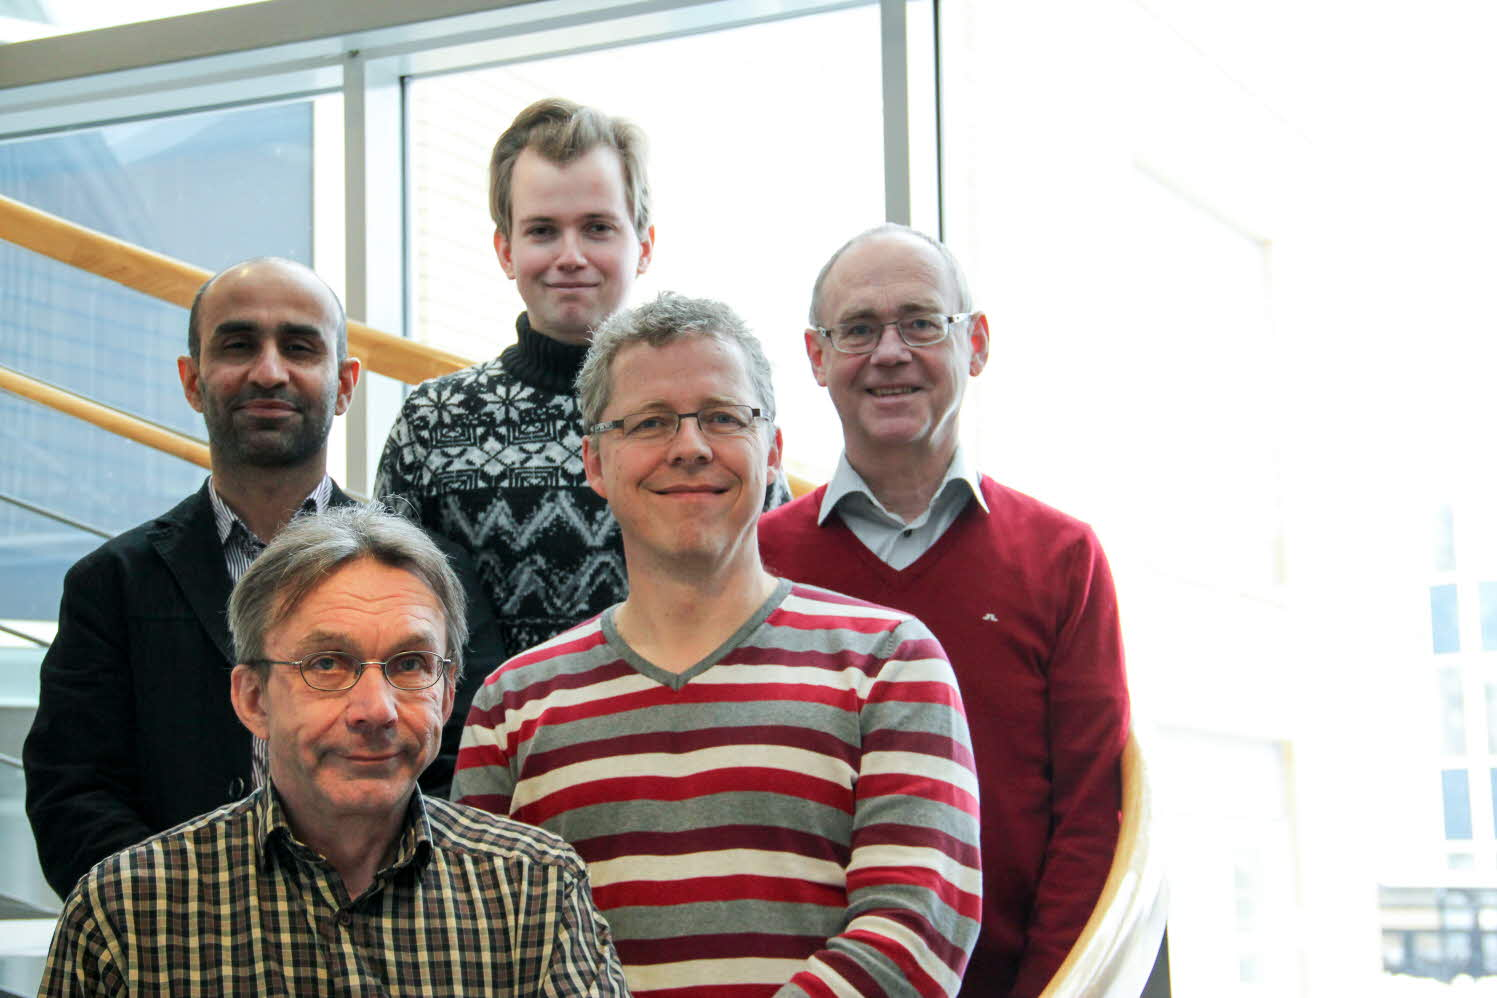 The Waves, Signals and Systems research group